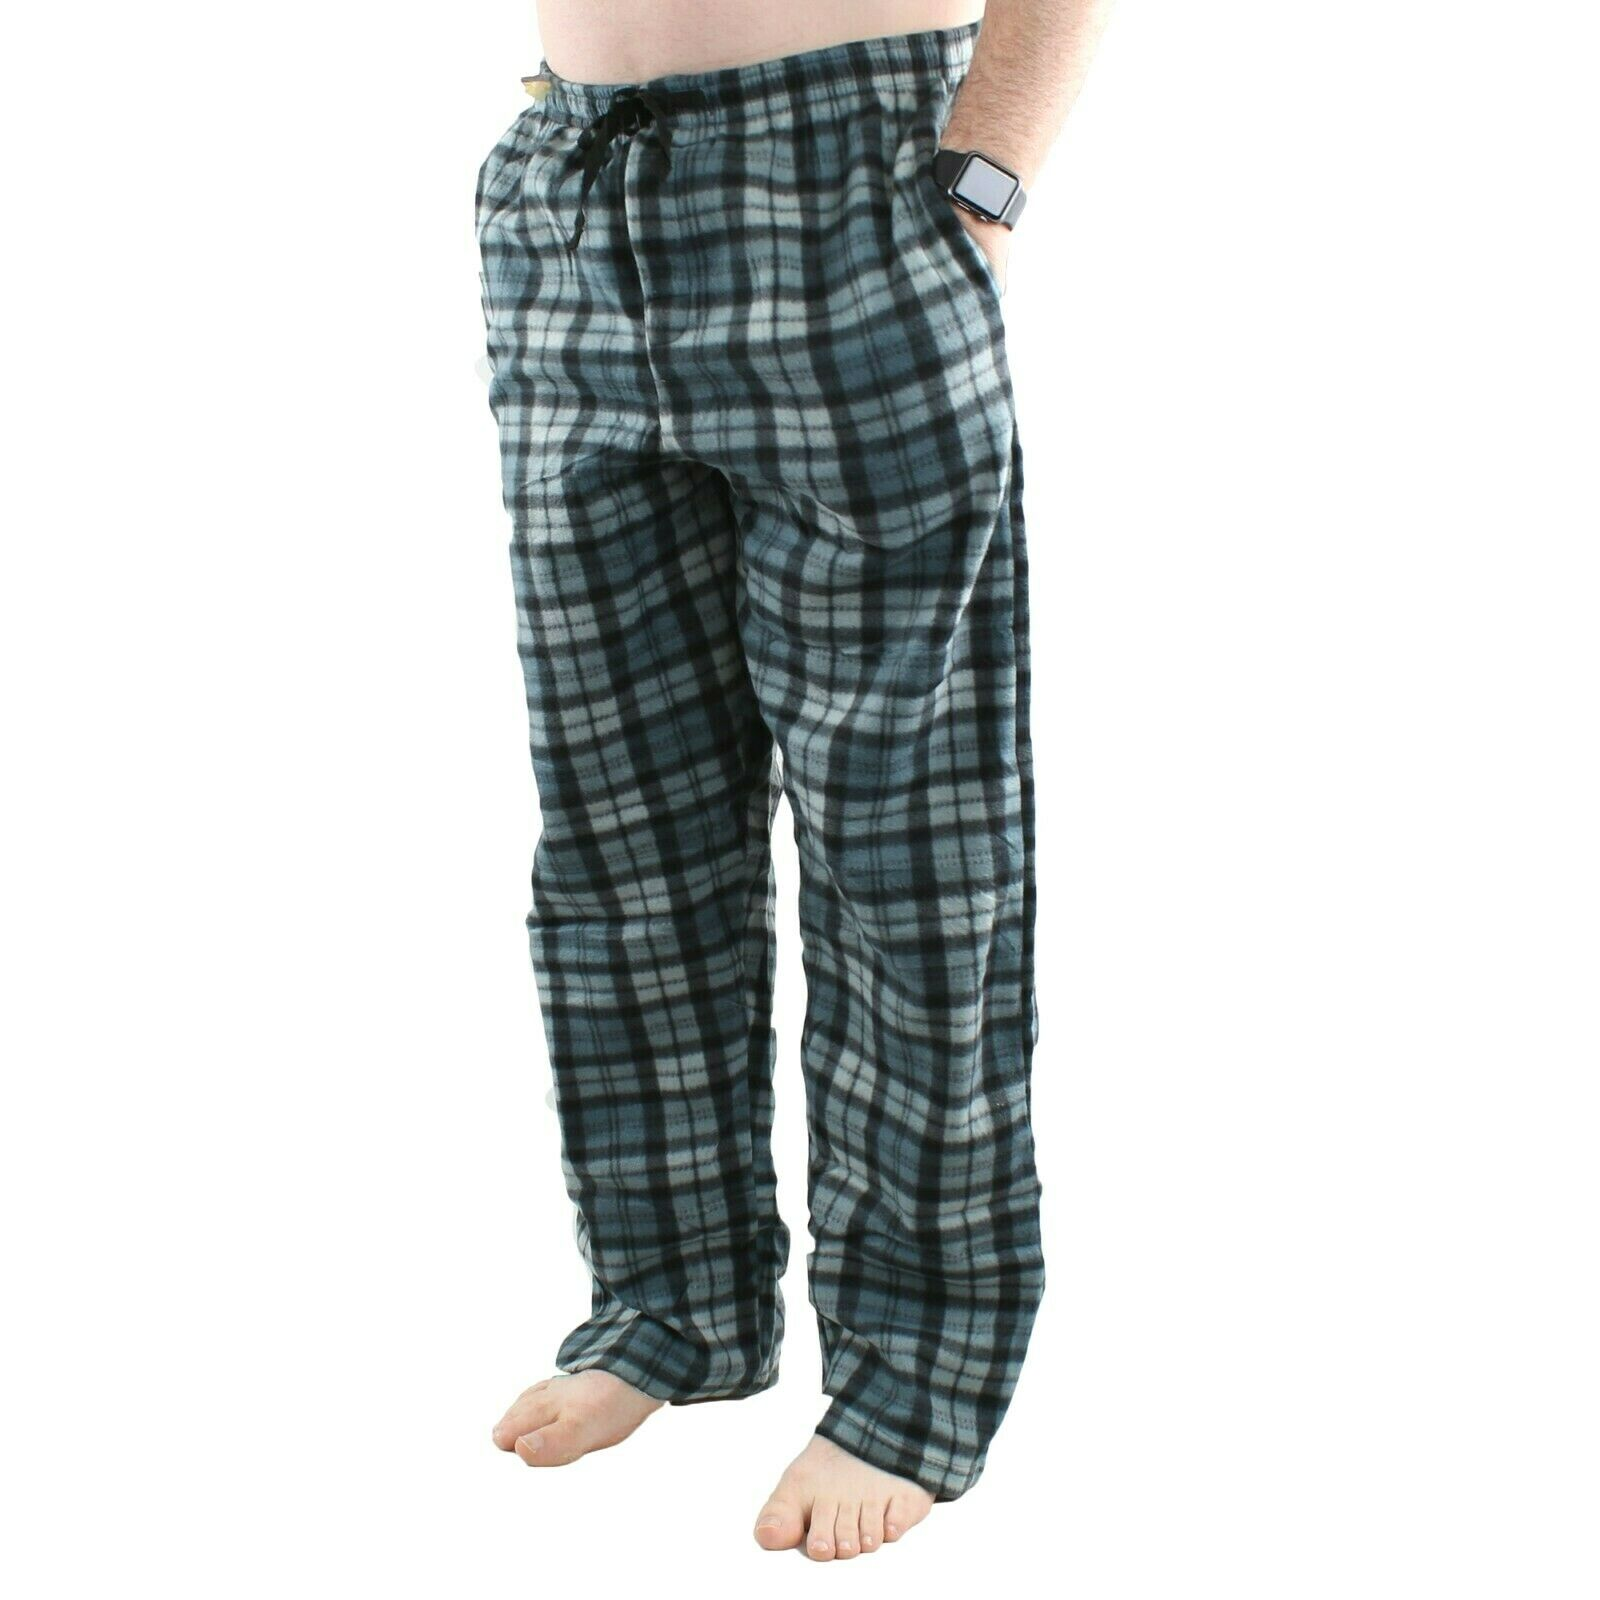 Bronze Eagle Mens Sleepwear Fleece Lounge Pajama Sleep Pants M to XXL